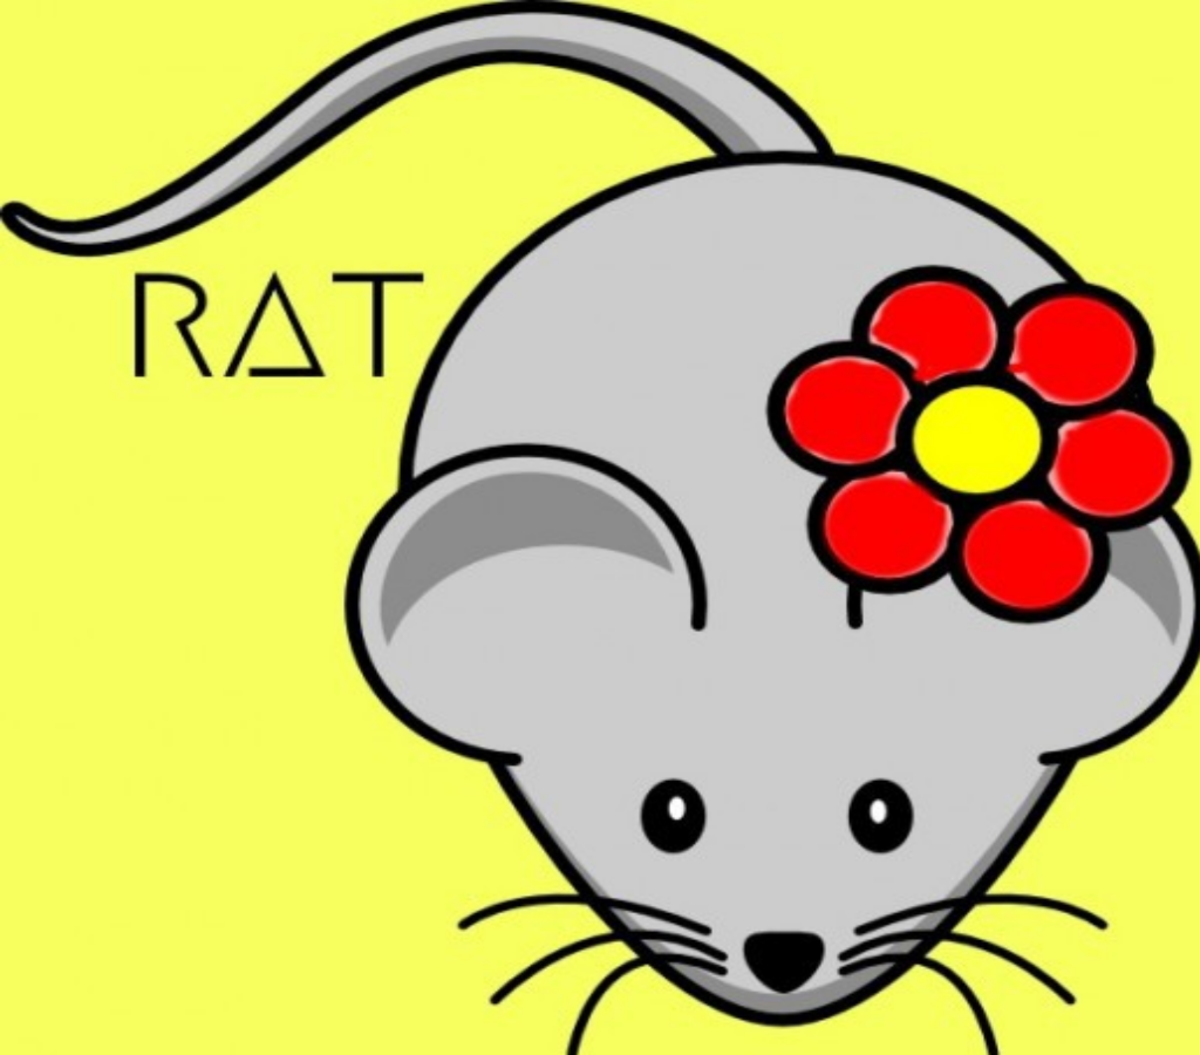 The Year of the Rat 2021